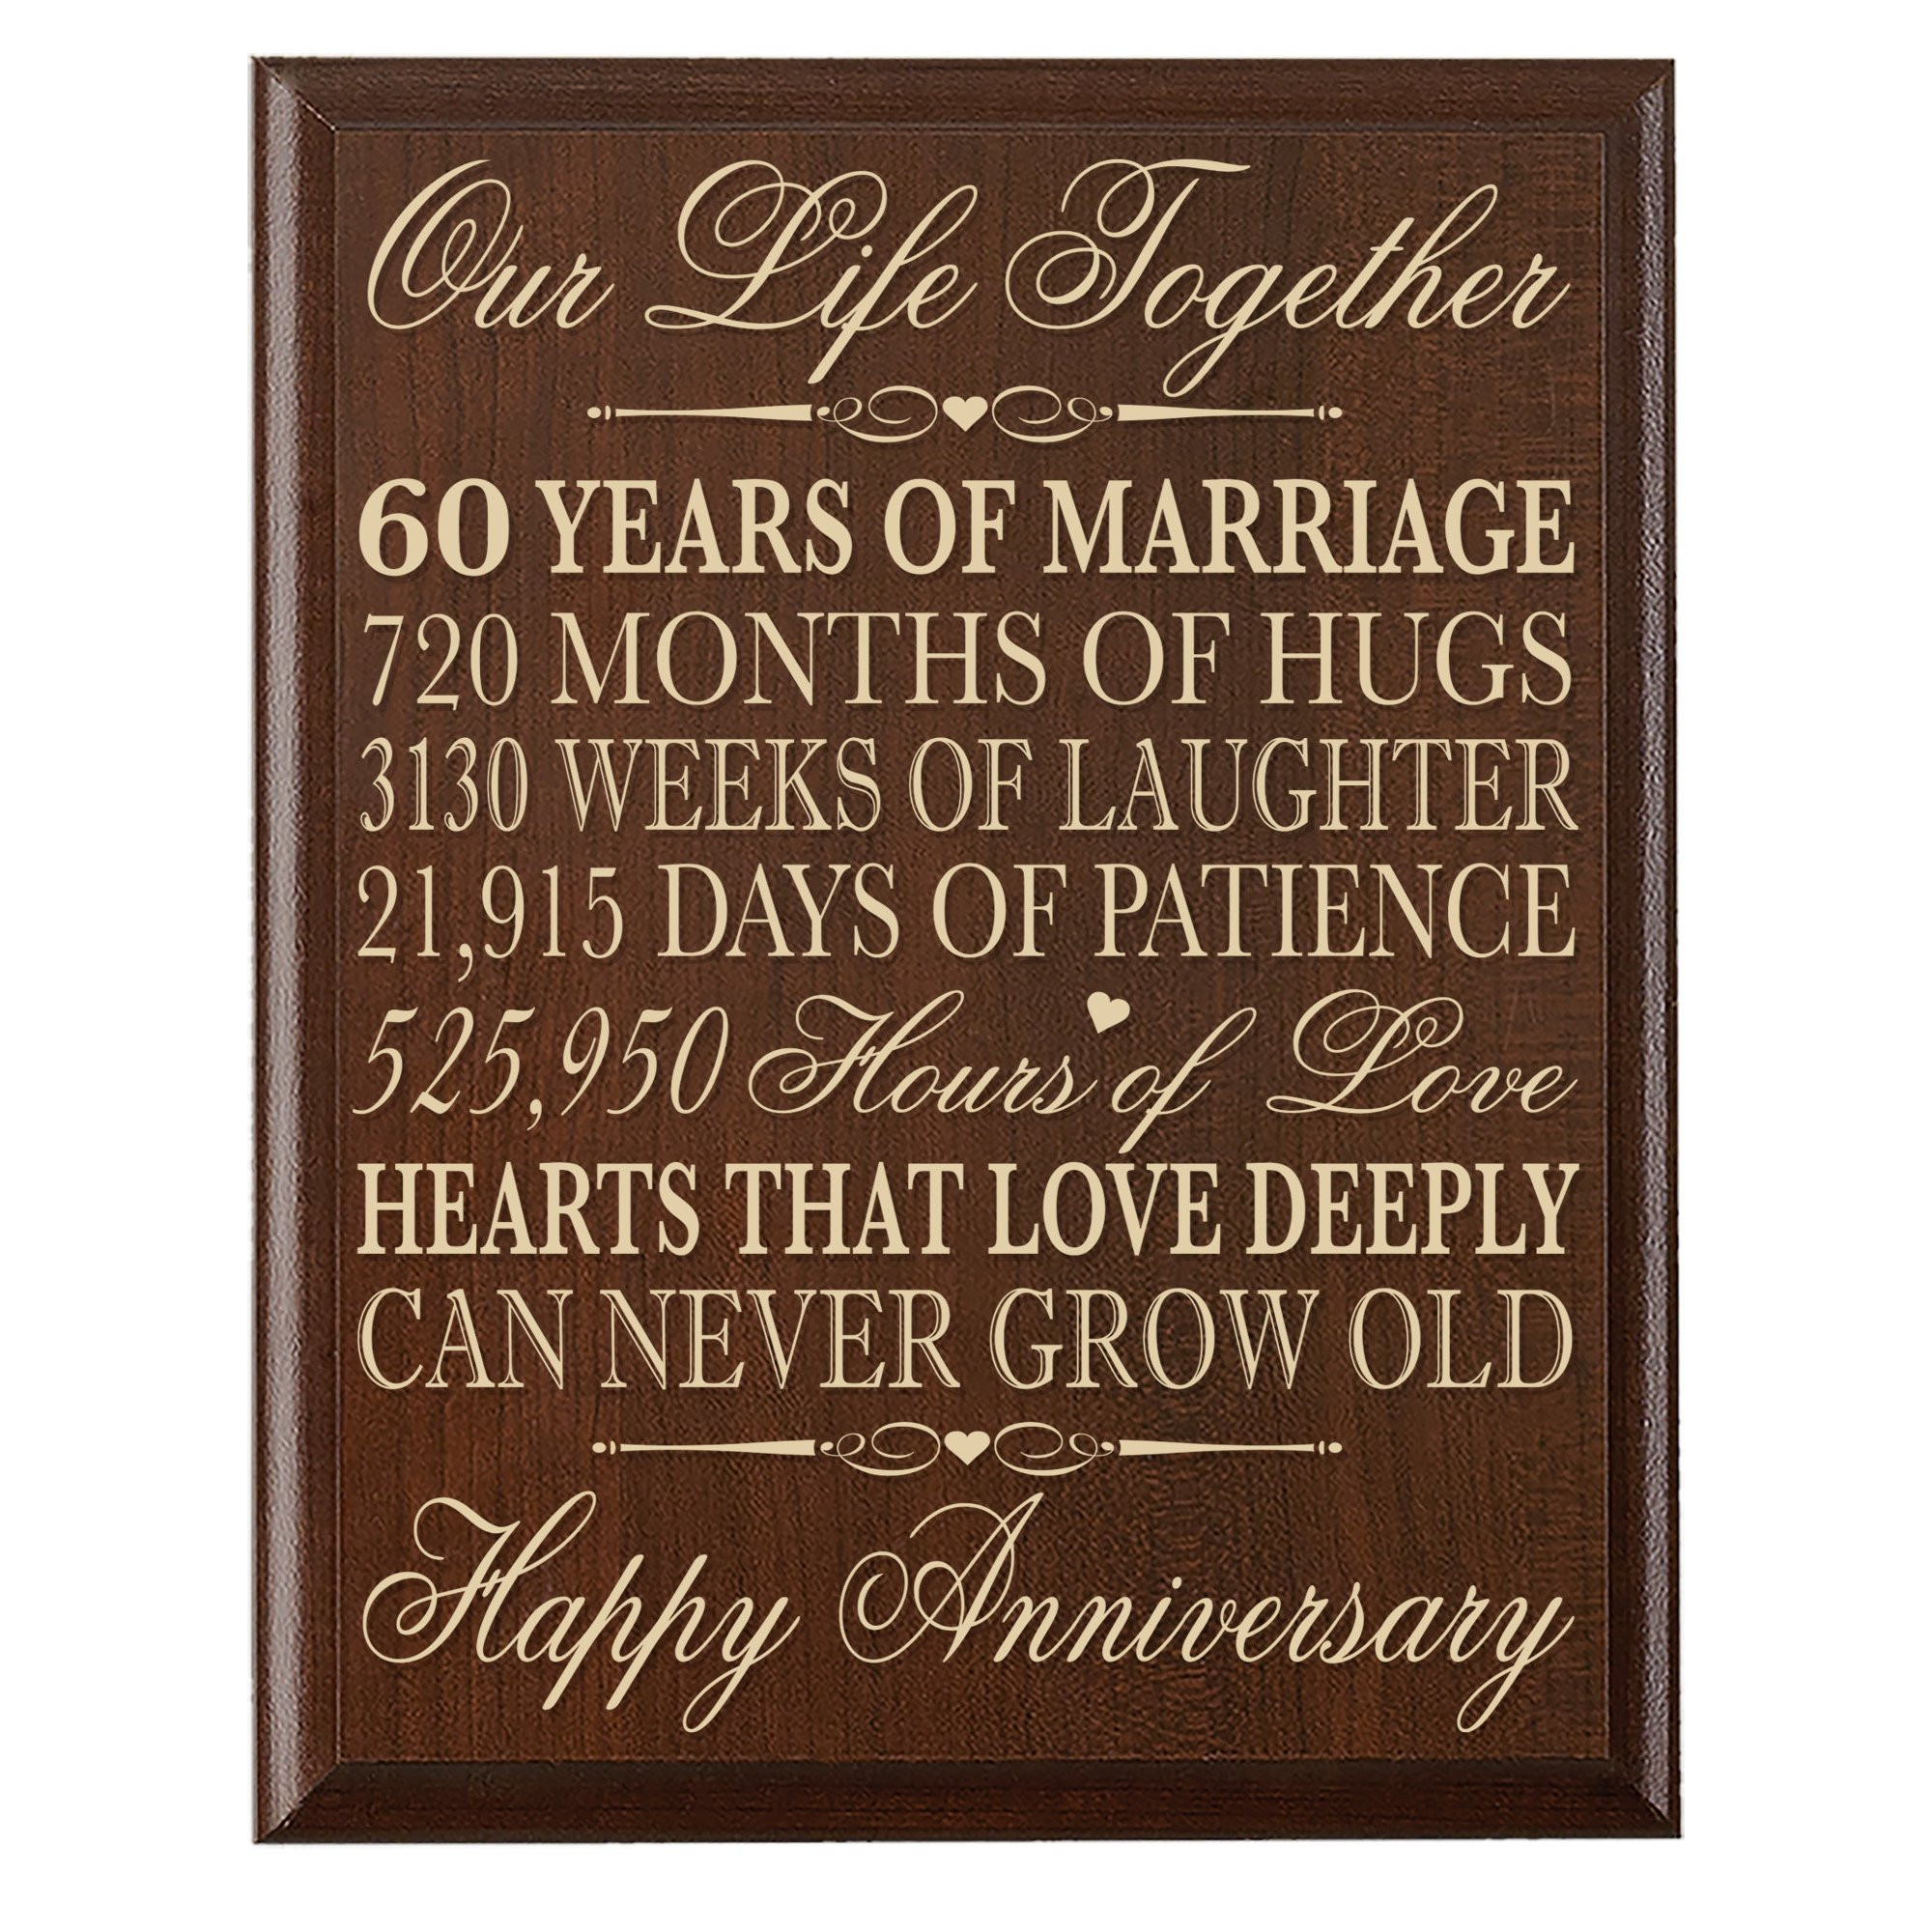 60Th Wedding Anniversary Gift Ideas  60th Wedding Anniversary Wall Plaque Gifts for Couple